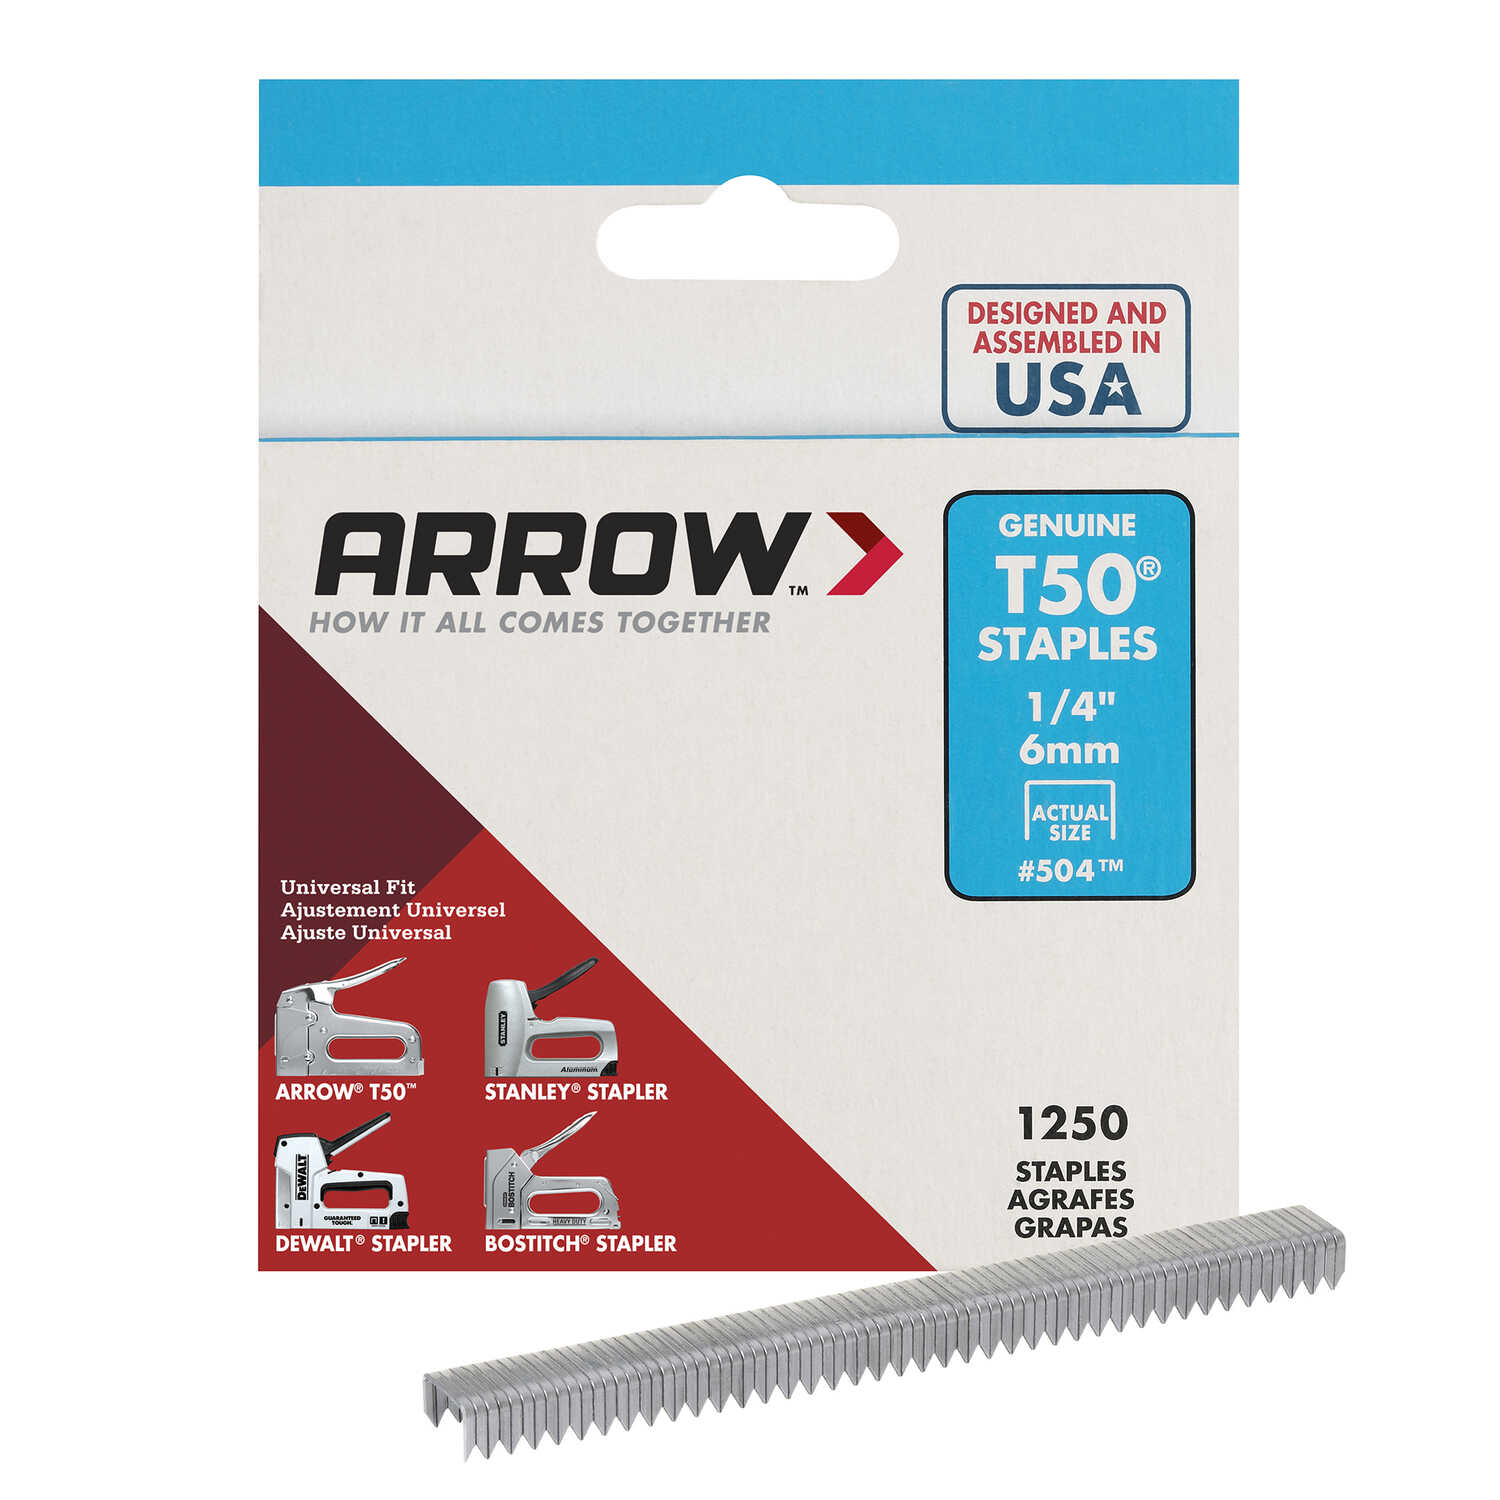 Arrow Fastener  1/4 in. L x 3/8 in. W Galvanized Steel  Wide Crown  Heavy Duty Staples  18 Ga. 1250